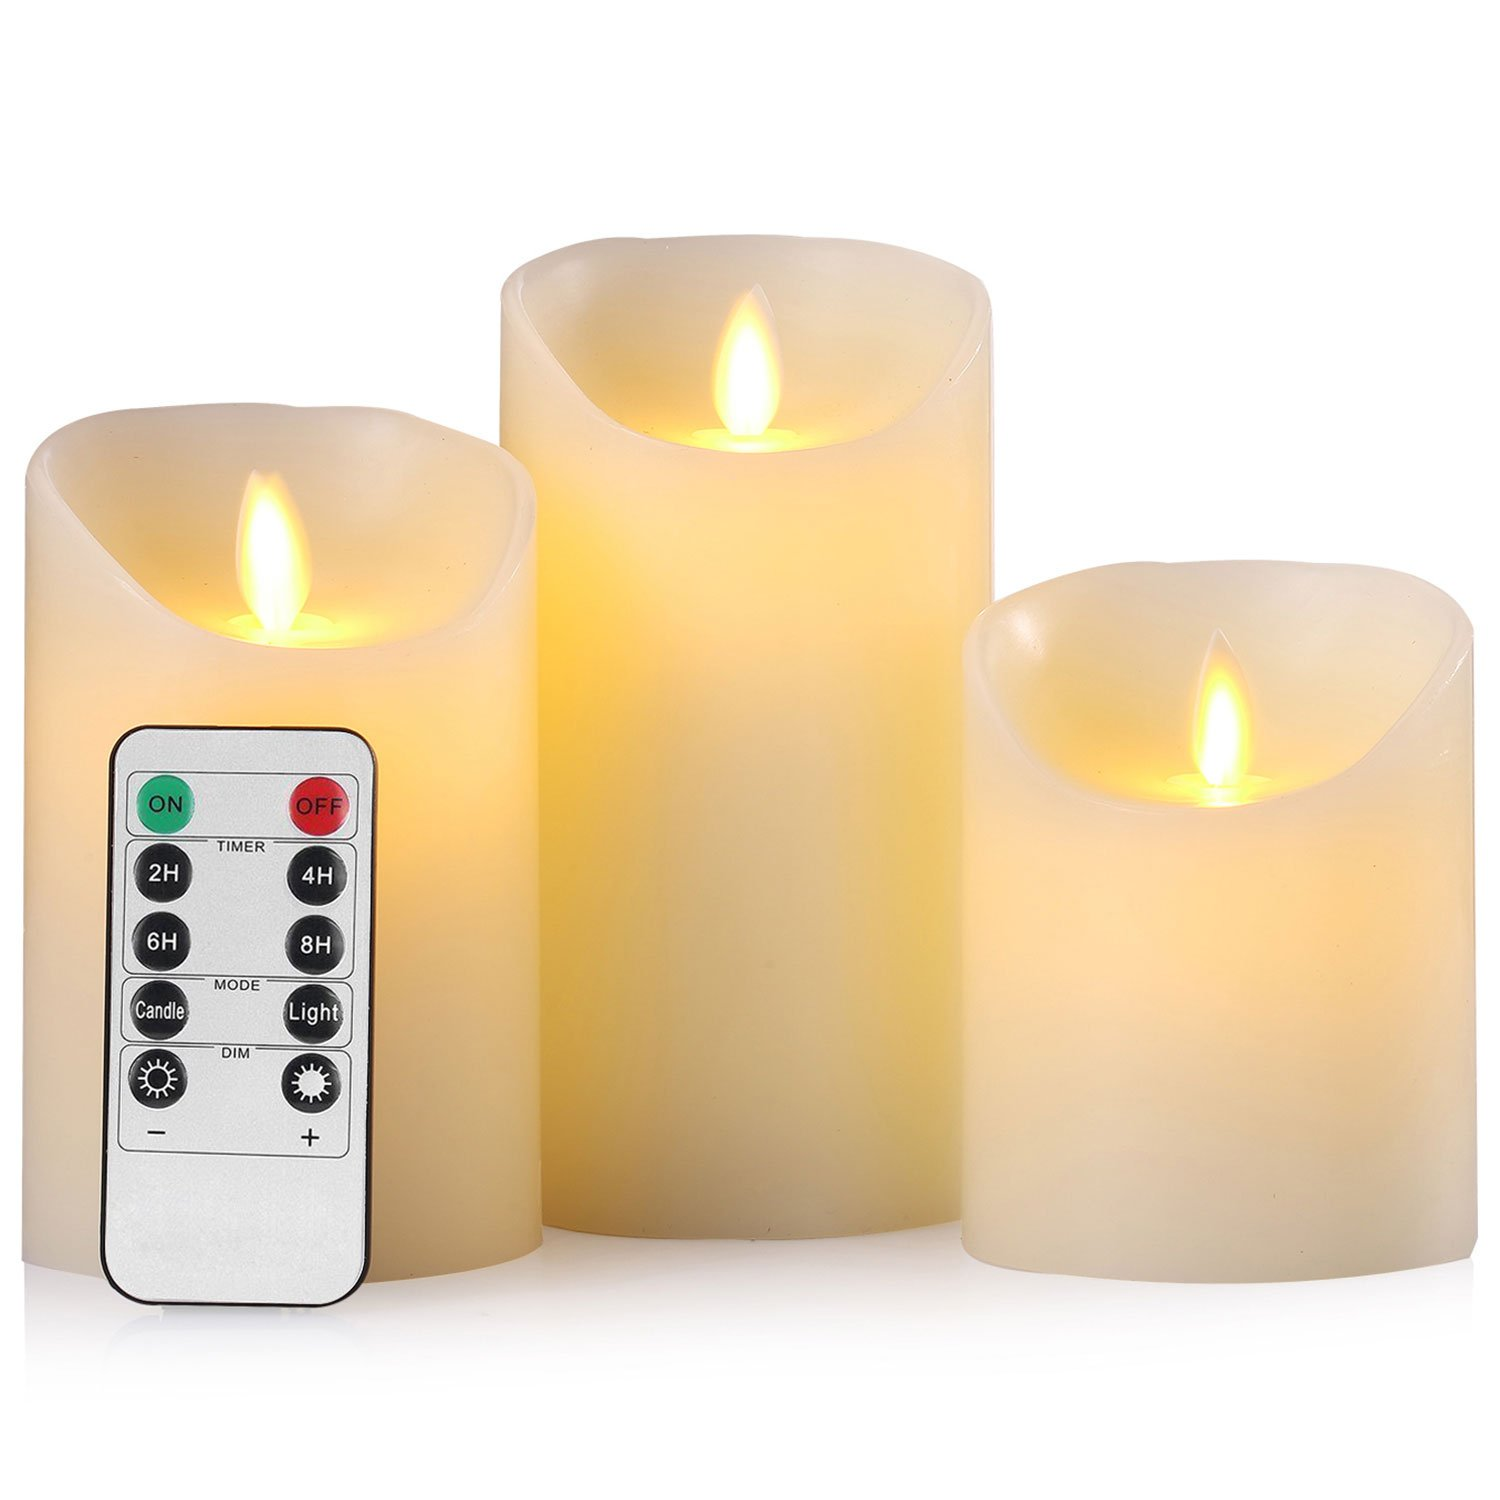 Flameless Candles Battery Operated Pillar Real Wax Flickering Moving Wick Electric LED Candle Sets with Remote Control Cycling 24 Hours Timer by Aku Tonpa, 4'' 5'' 6'' Pack of 3